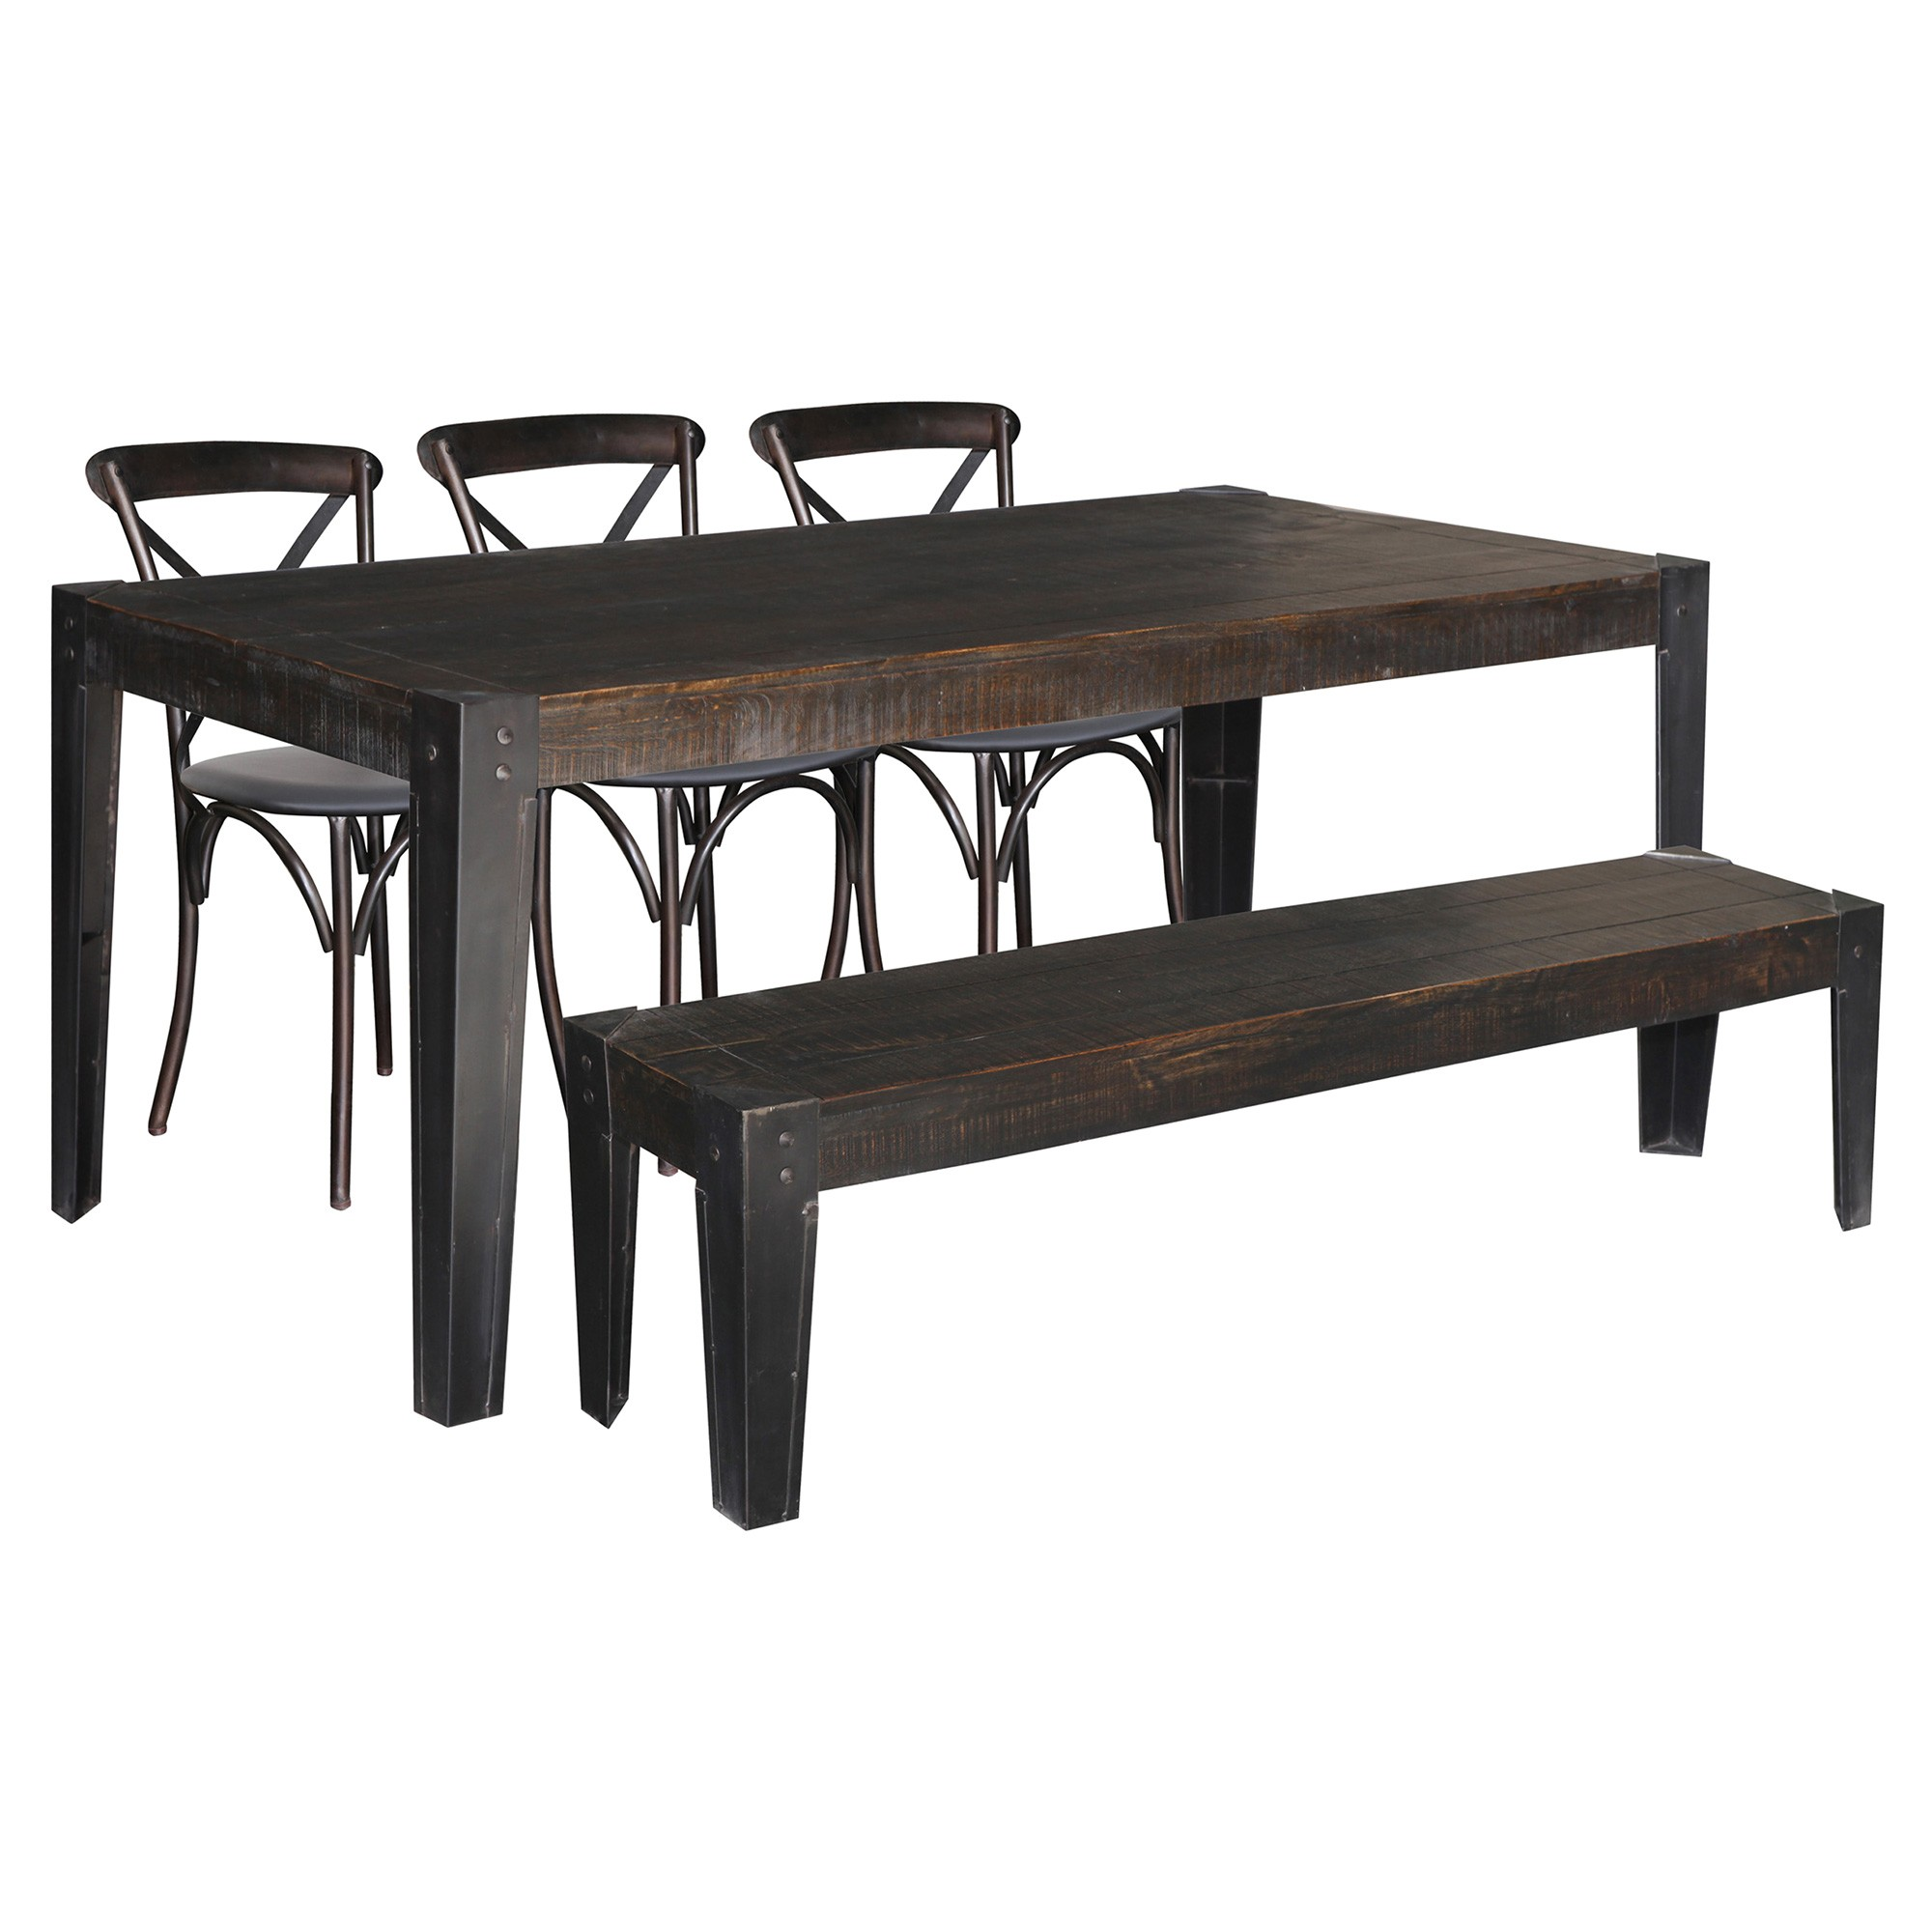 City Living 5 Piece Hardwood Timber & Metal Dining Table Set with Bench, 178cm